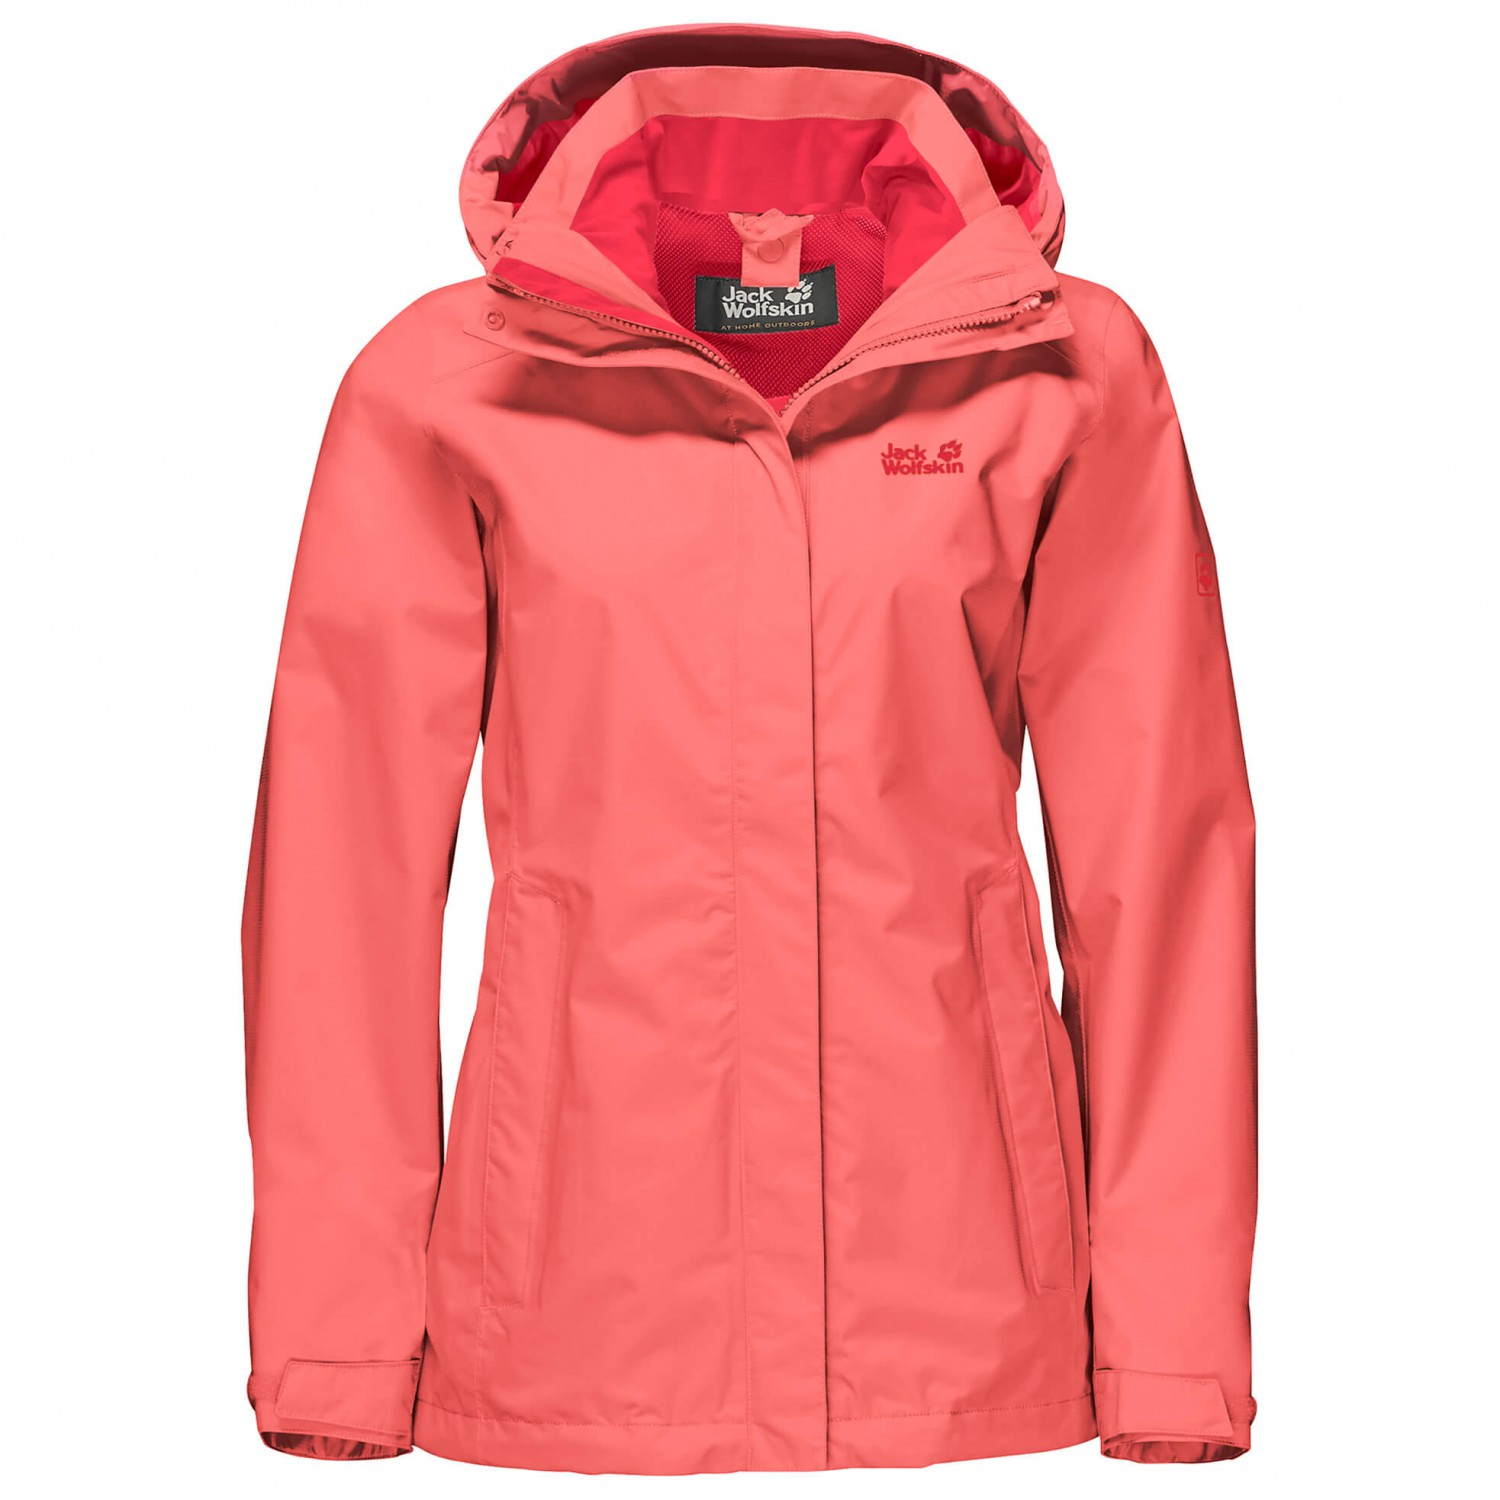 Lakes Jack Wolfskin Jacket Waterproof Seven Women's dCBorxe